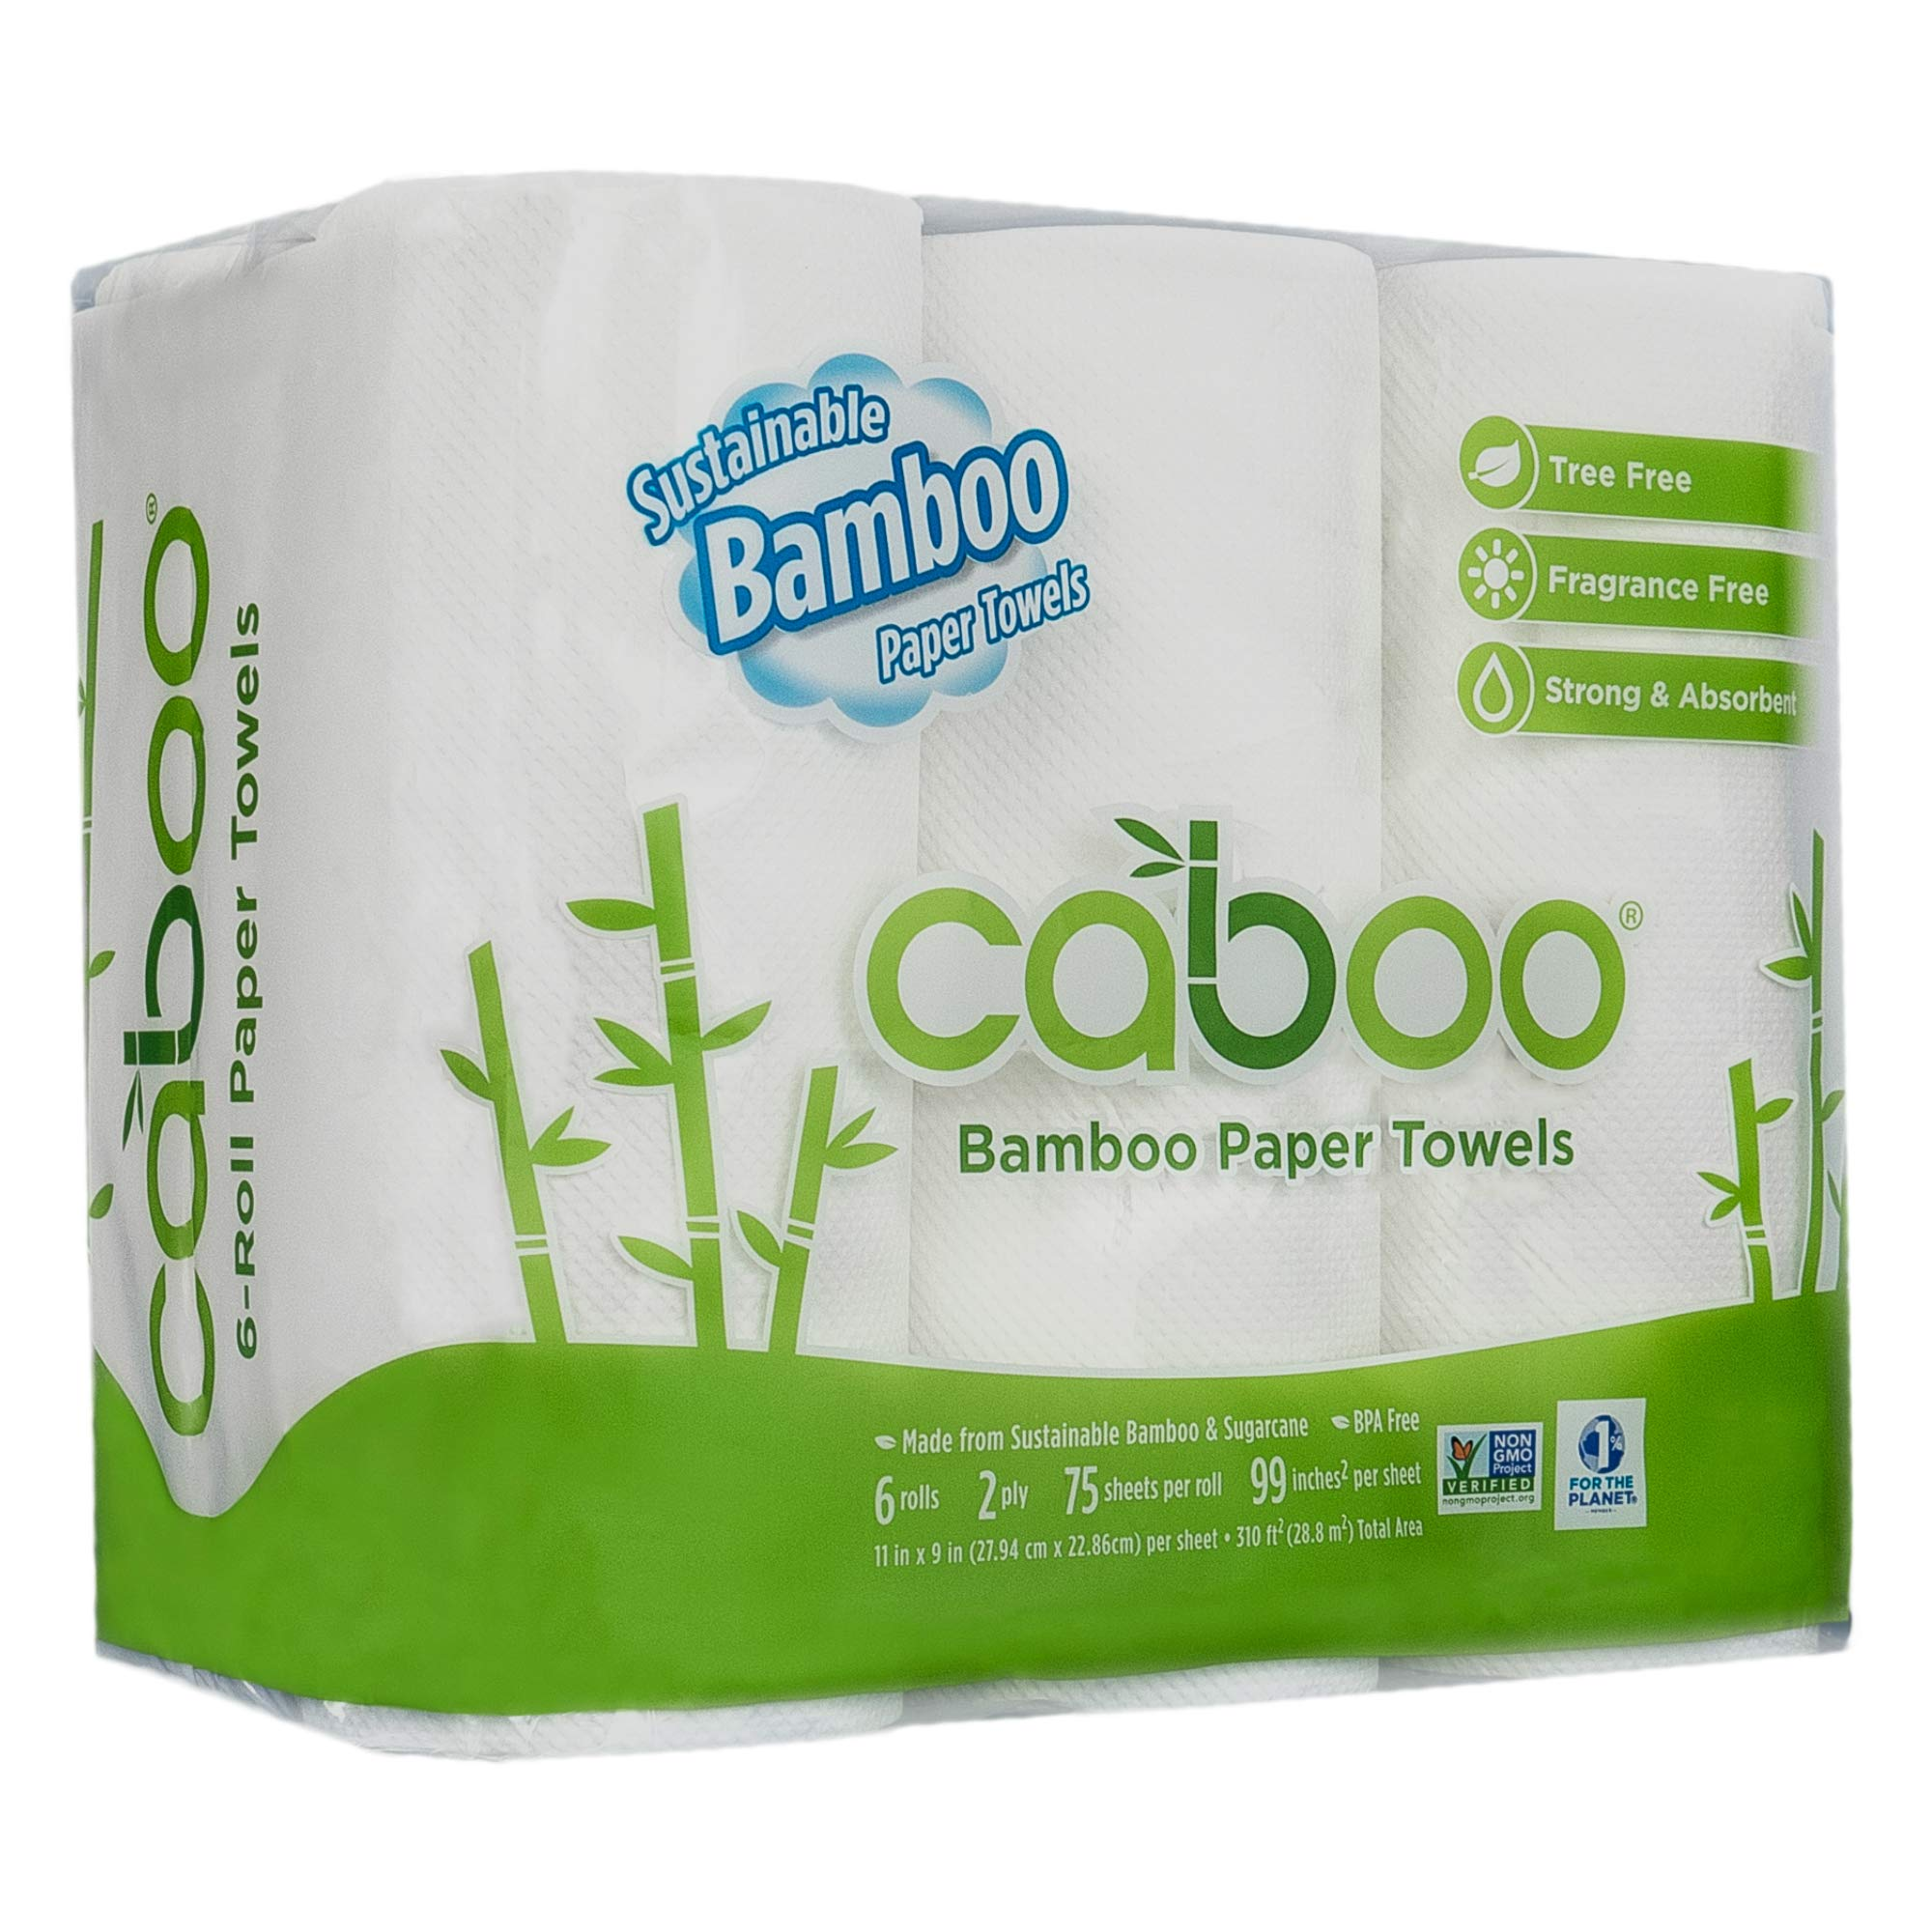 Amazon.com: Silk'n Soft Bamboo Toilet Paper - Tree-Free ...